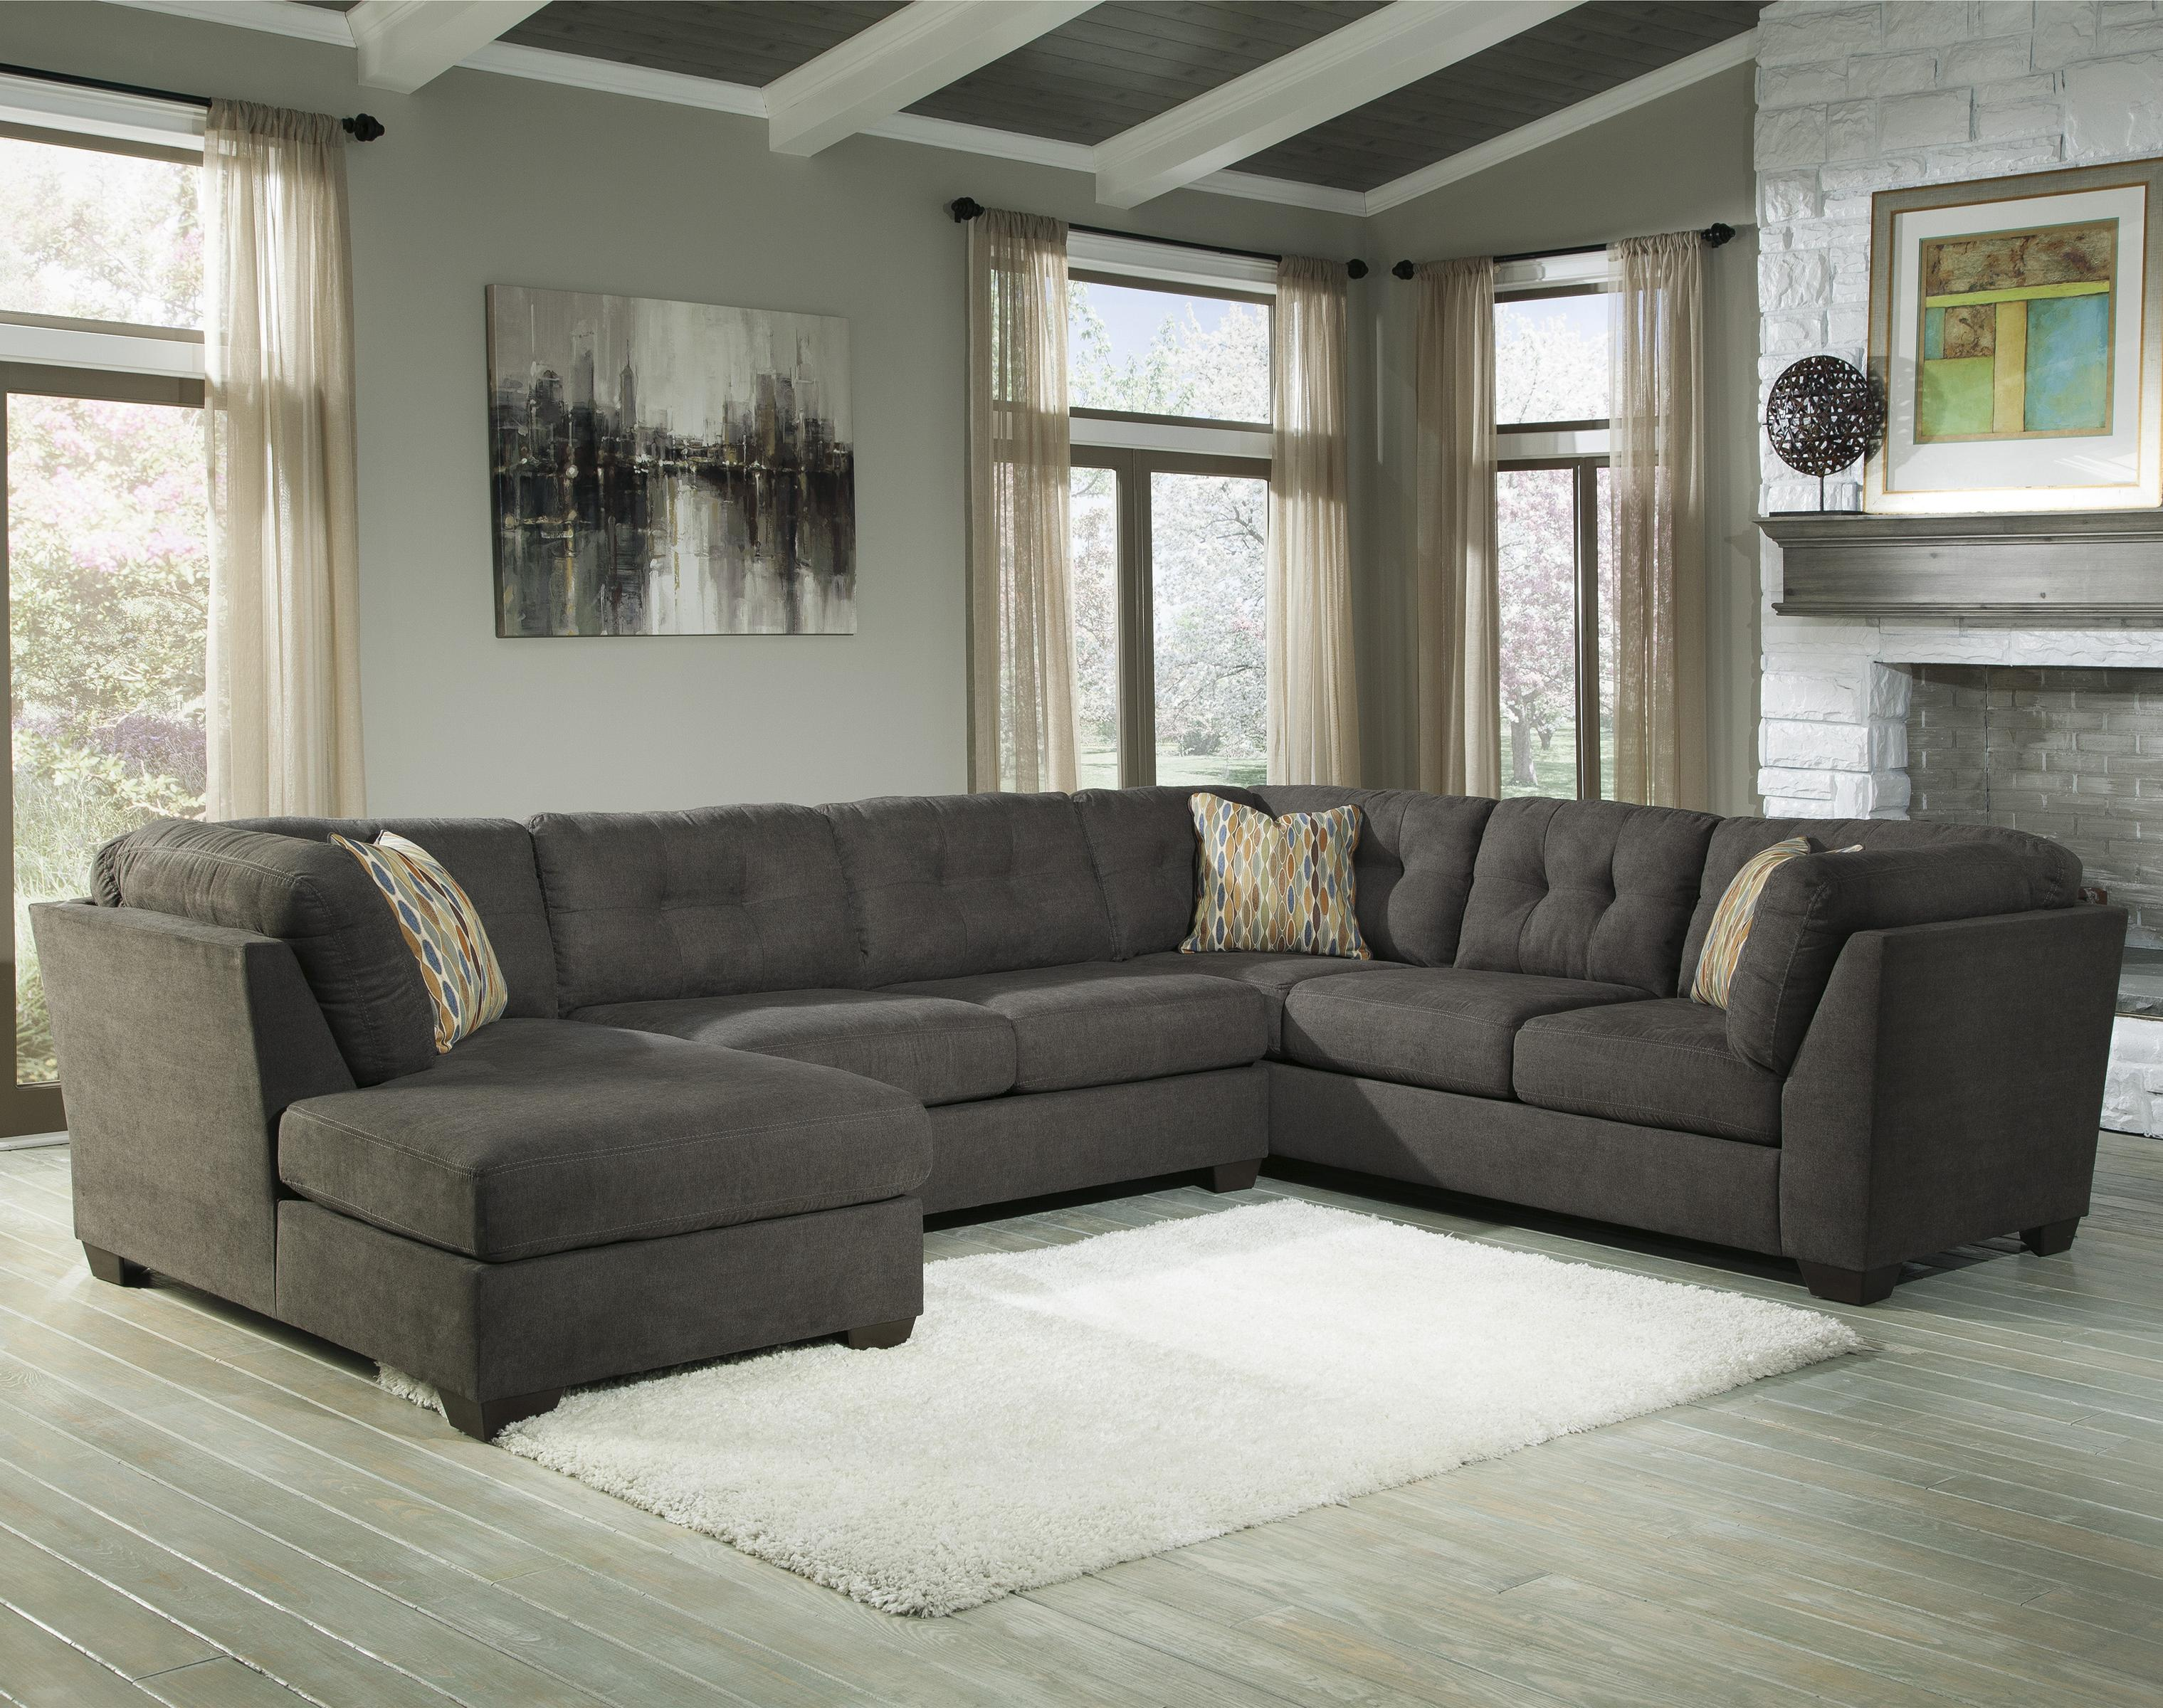 Benchcraft Delta City - Steel 3-Piece Sectional w/ Sleeper u0026 Left Chaise - : sectional sofa left chaise - Sectionals, Sofas & Couches